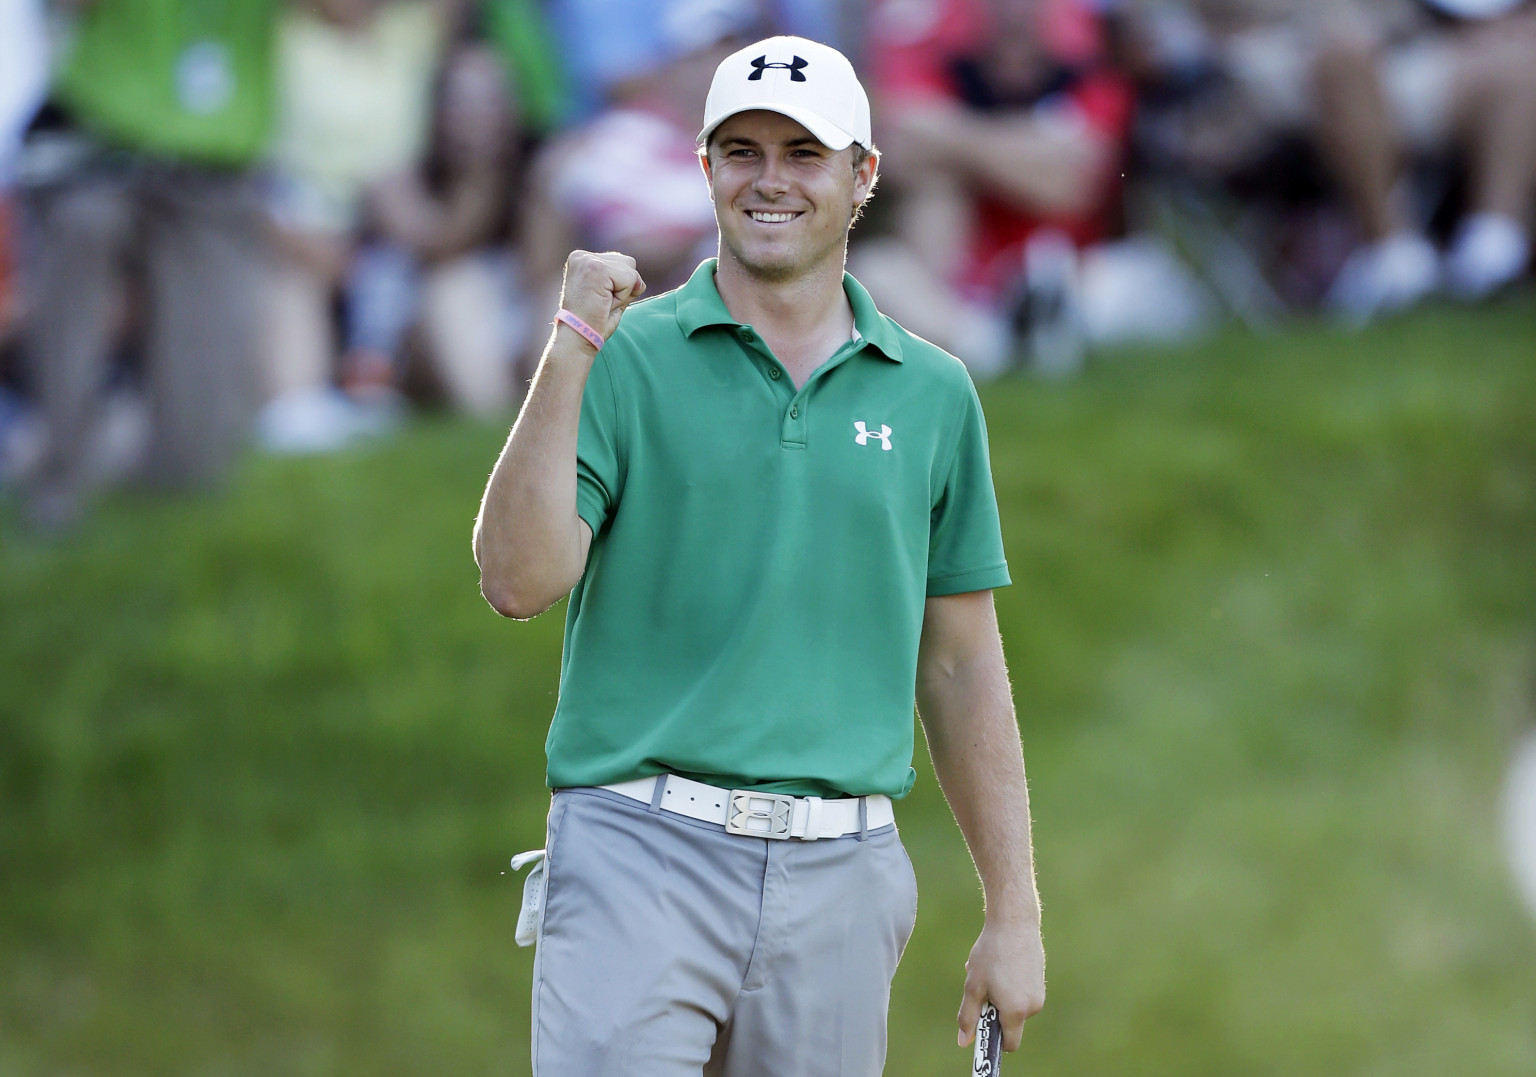 Spieth became the second youngest golfer to ever win the Masters tournament.